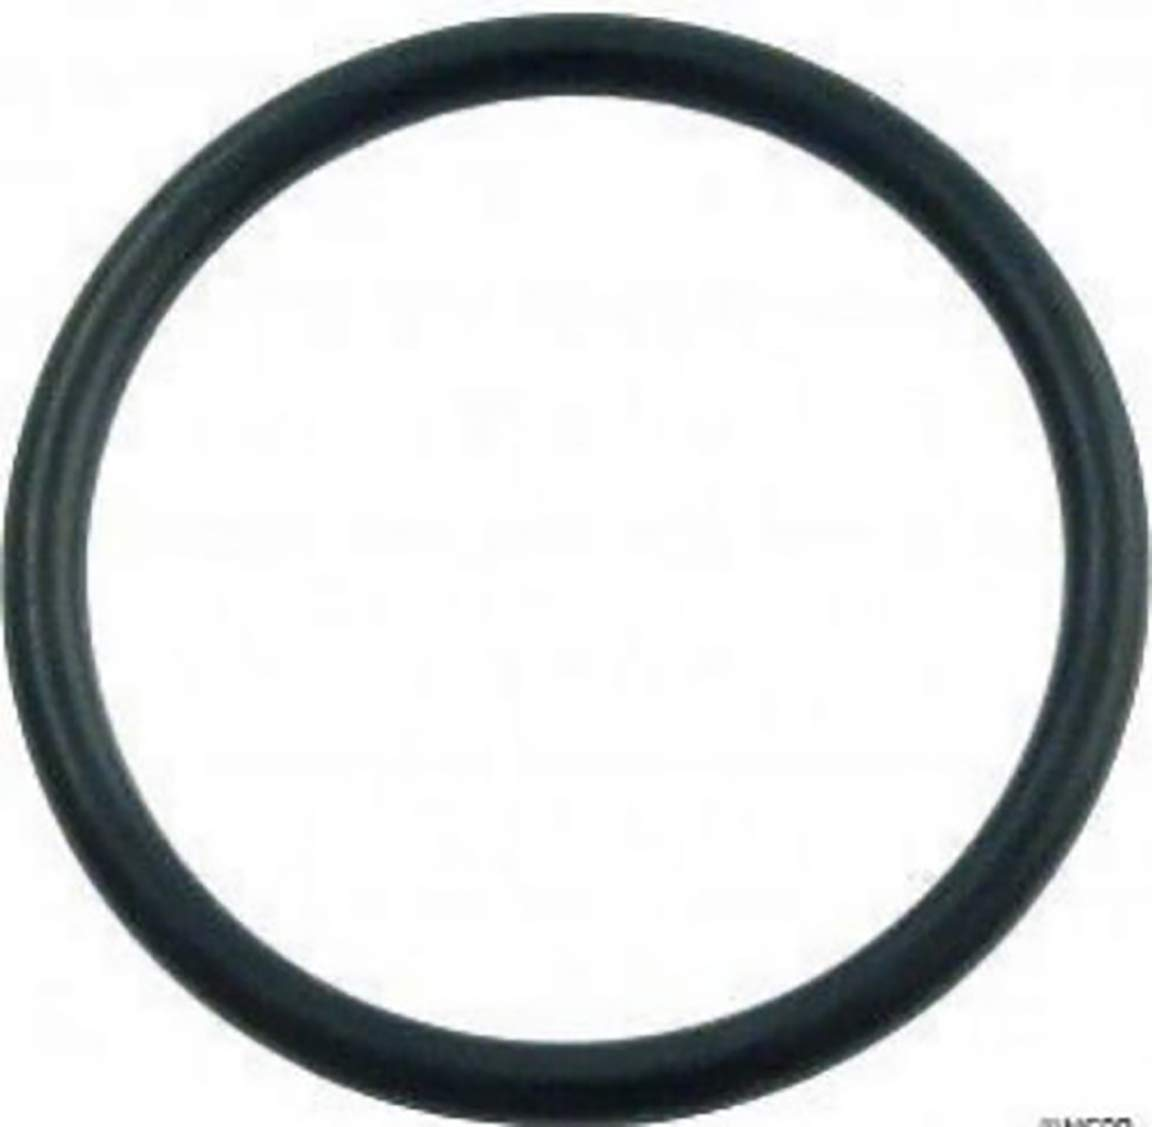 O-Ring Depot Fits and Compatible with Fleck 7000 SXT Powerhead Assembly o-Ring 41122